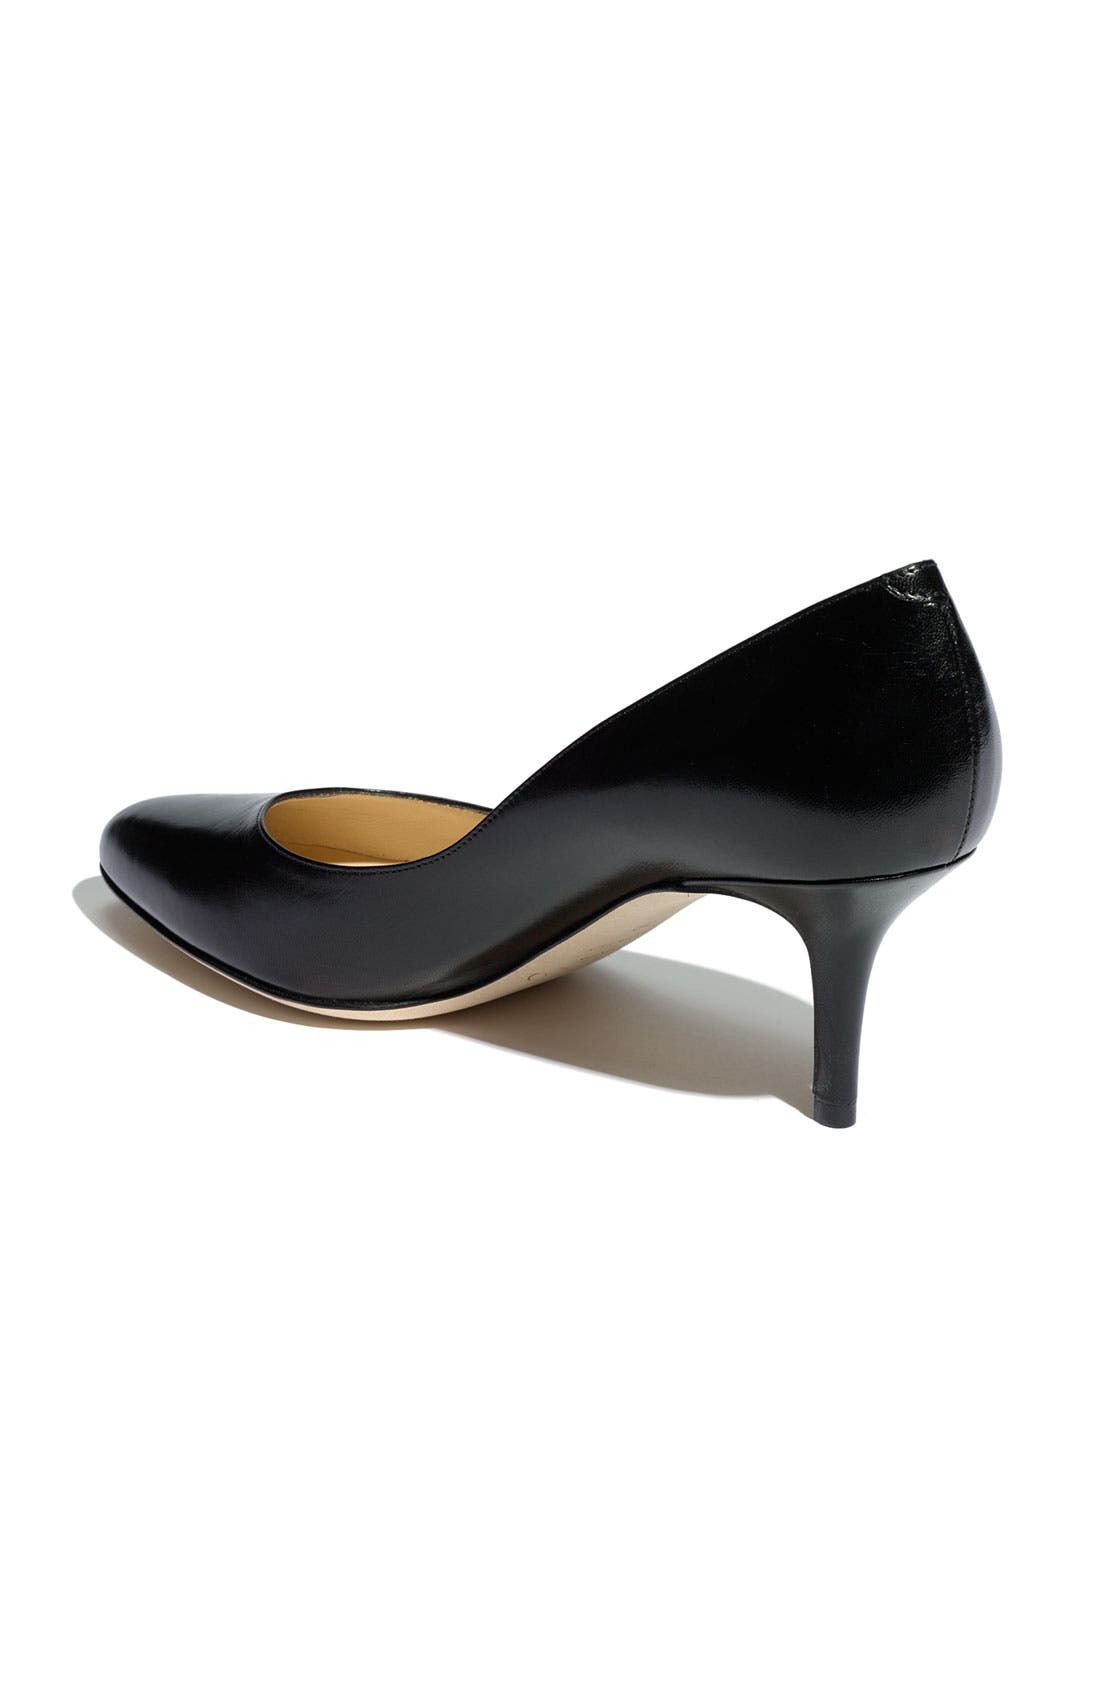 Alternate Image 2  - Jimmy Choo 'Irena' Round Toe Pump